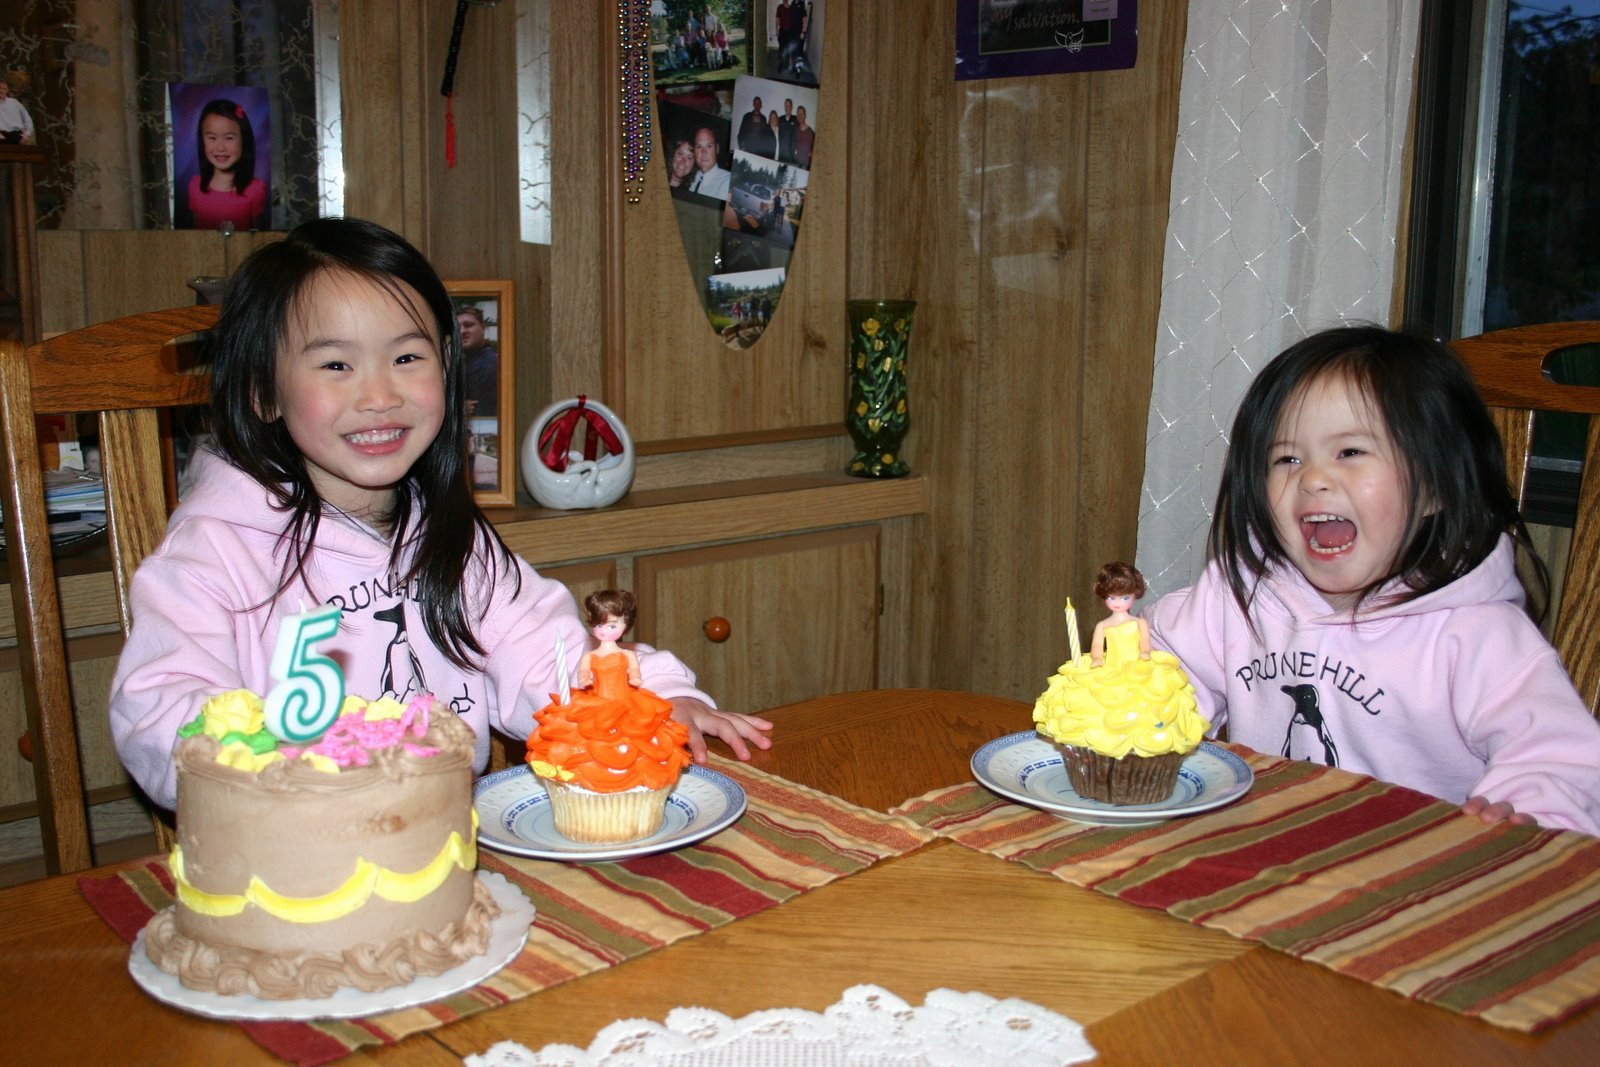 [Simones+First+5th+BDay+Party+006-1.JPG]